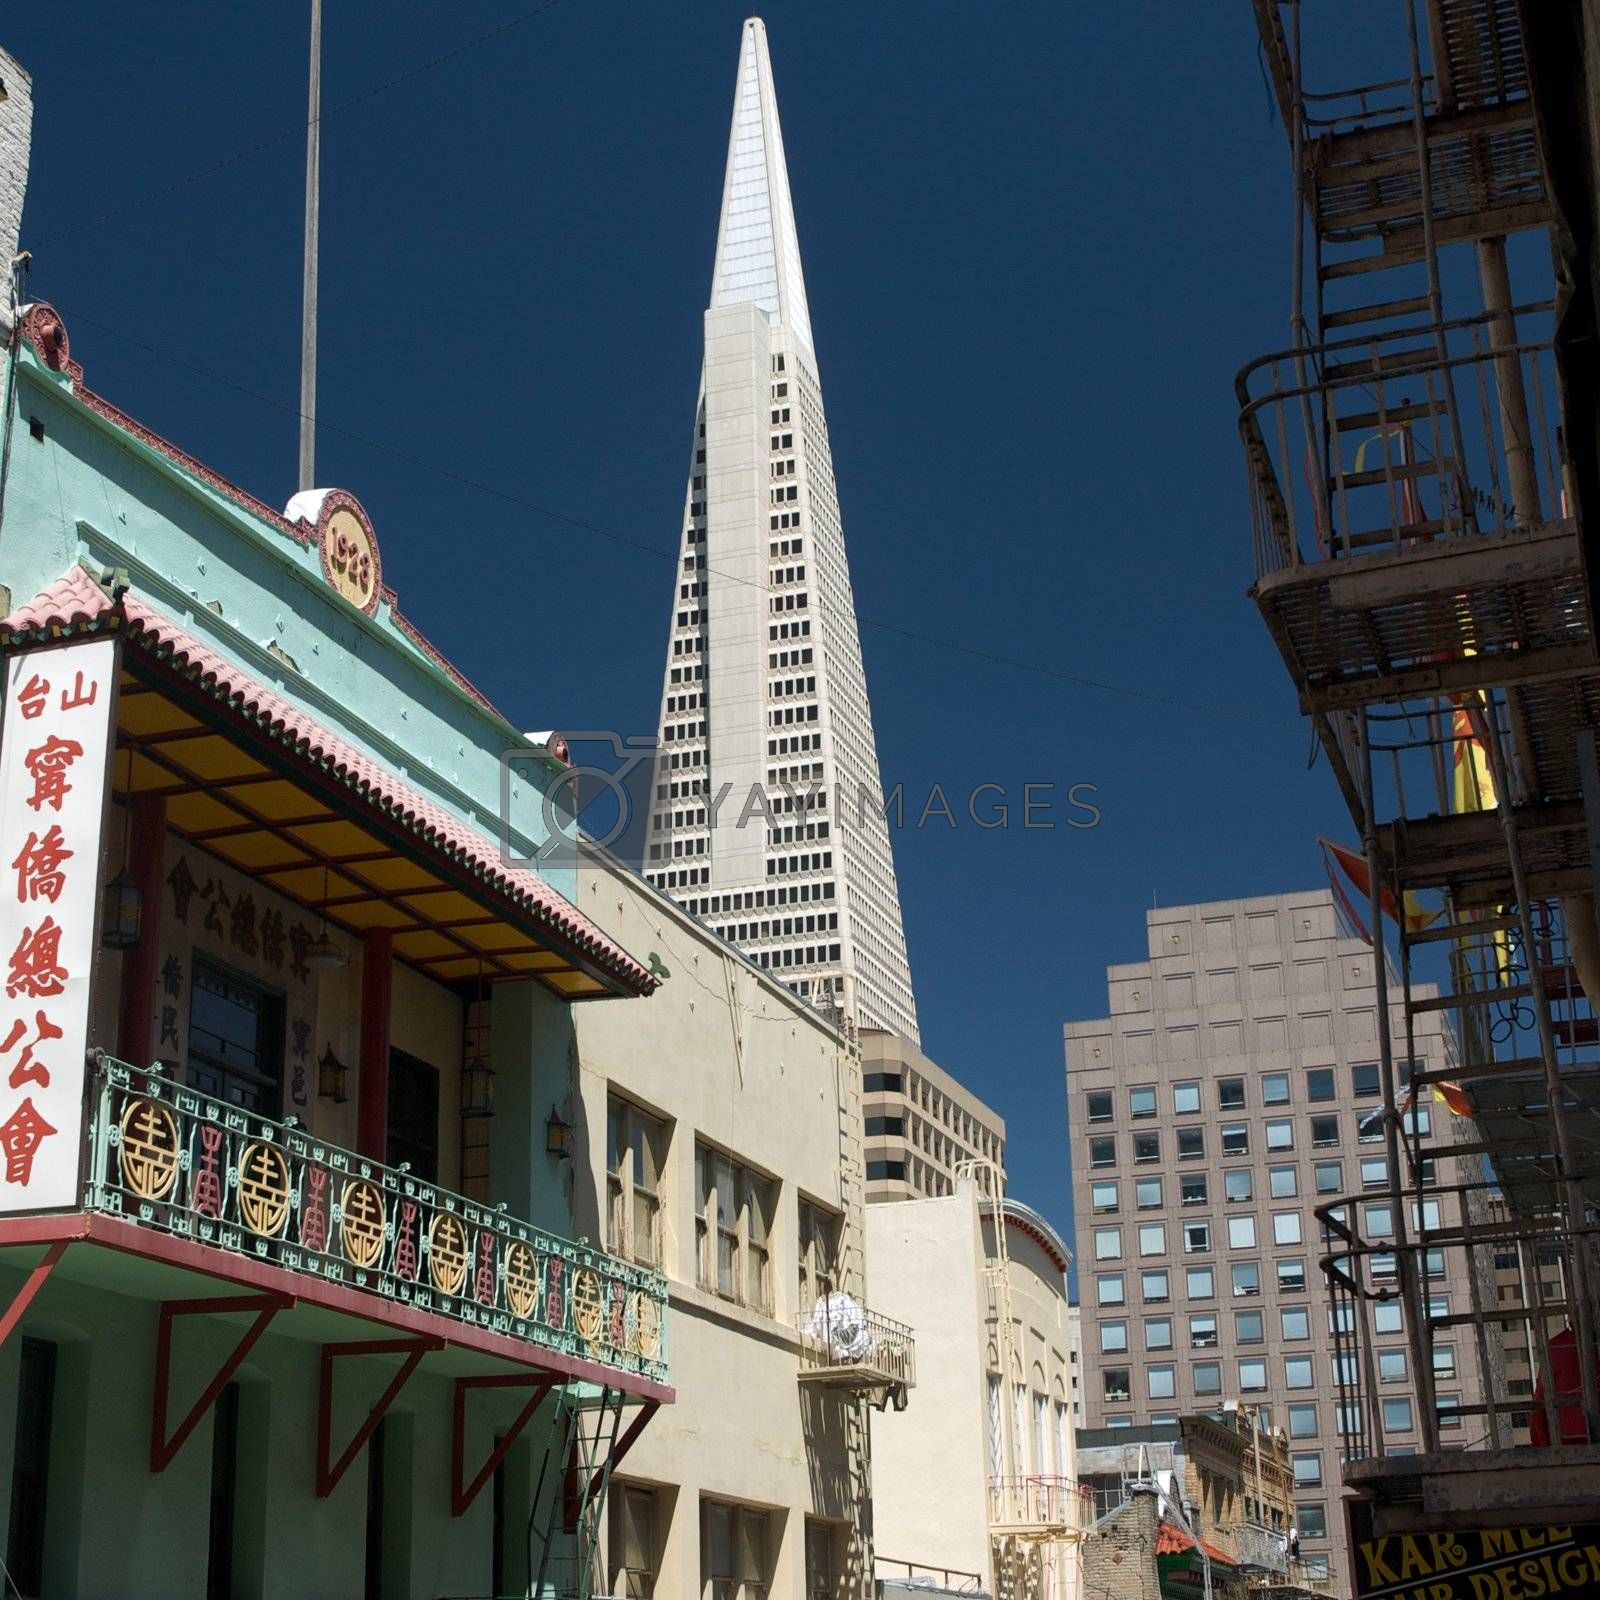 USA, California, San Francisco, Chinatown by jedphoto